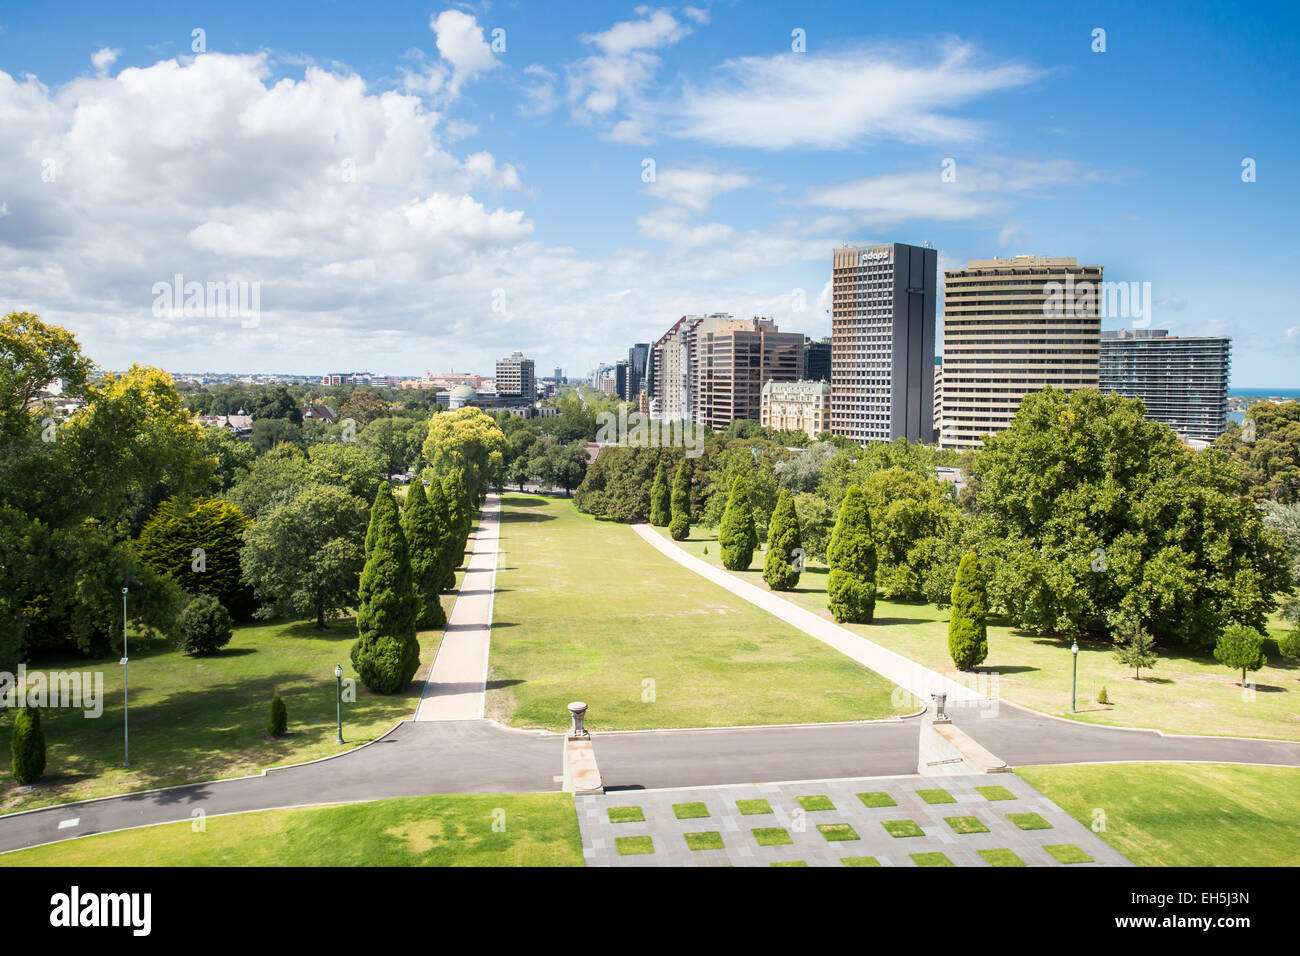 The view from the Shrine of Remembrance looking south towards St Kilda on a hot summer's day - Stock Image